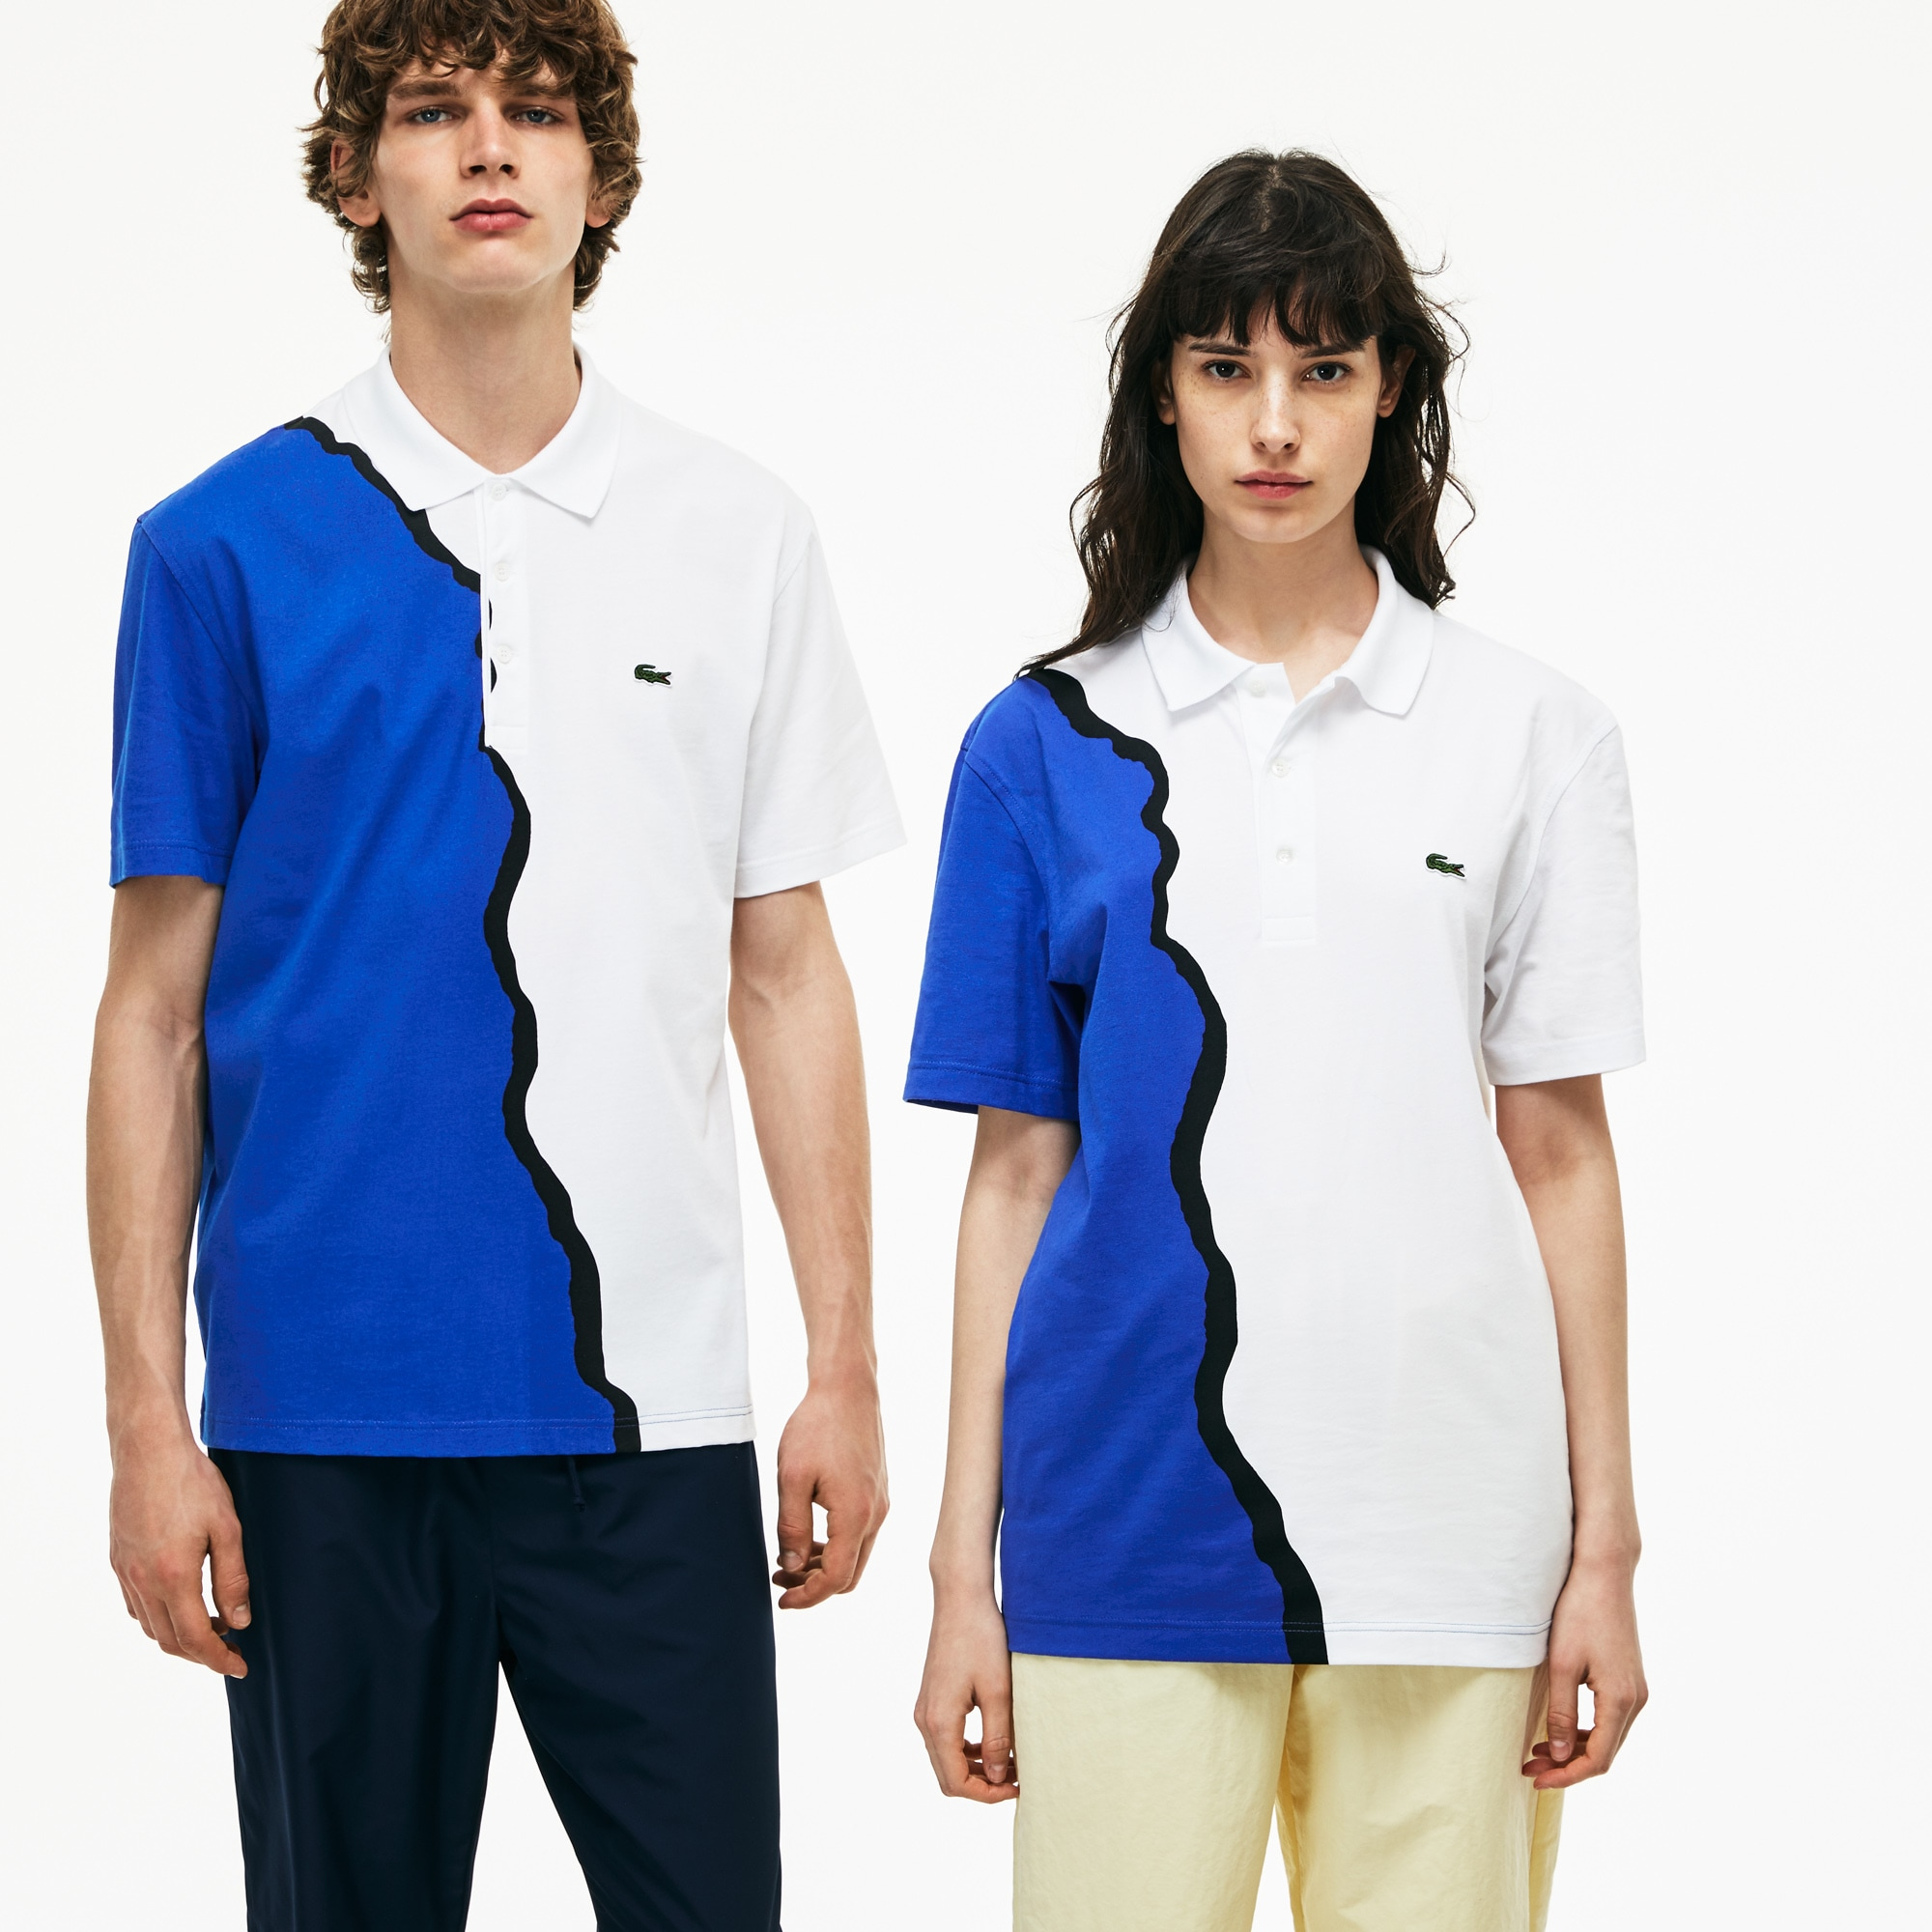 Unisex 1990s revival Lacoste 85th Anniversary Limited Edition Jersey Polo Shirt